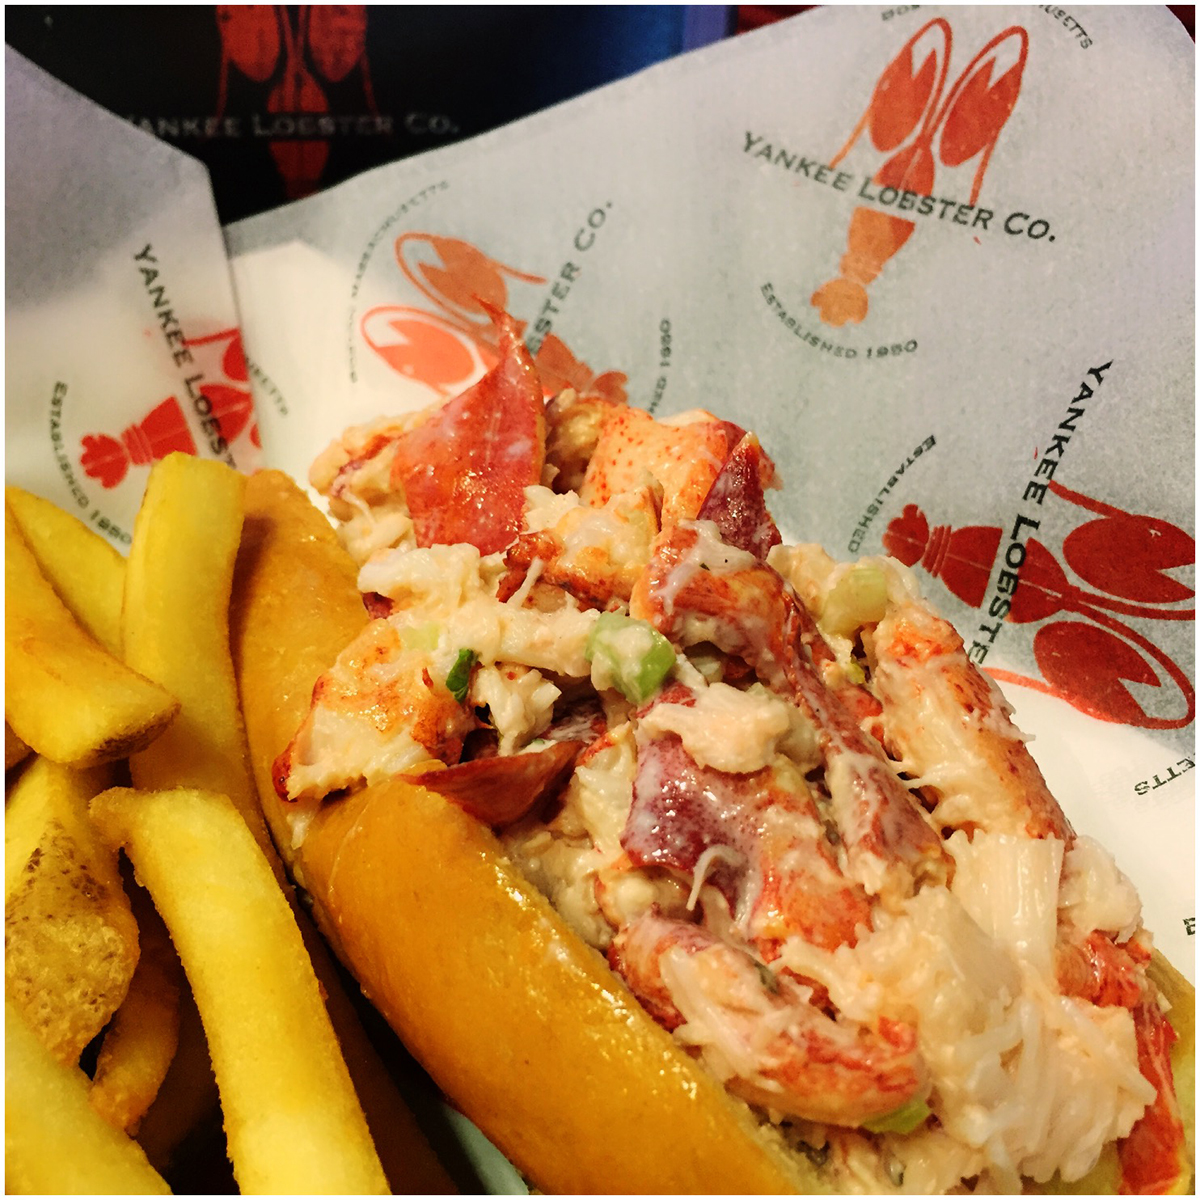 Yankee Lobster roll at Fenway Park